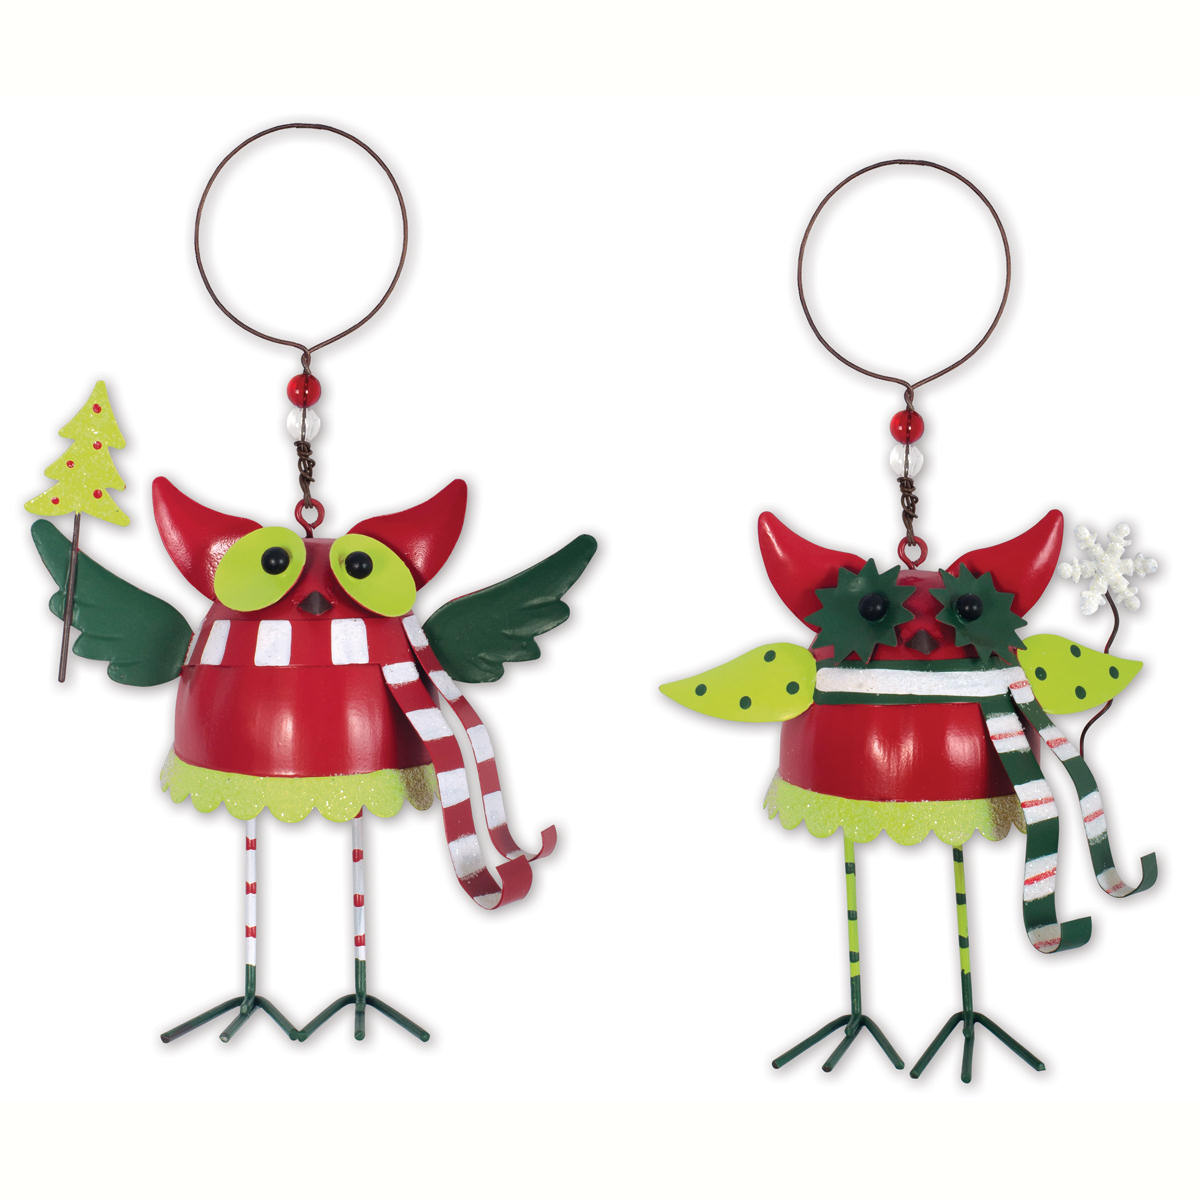 colorful metal owl ornaments - Metal Christmas Ornaments